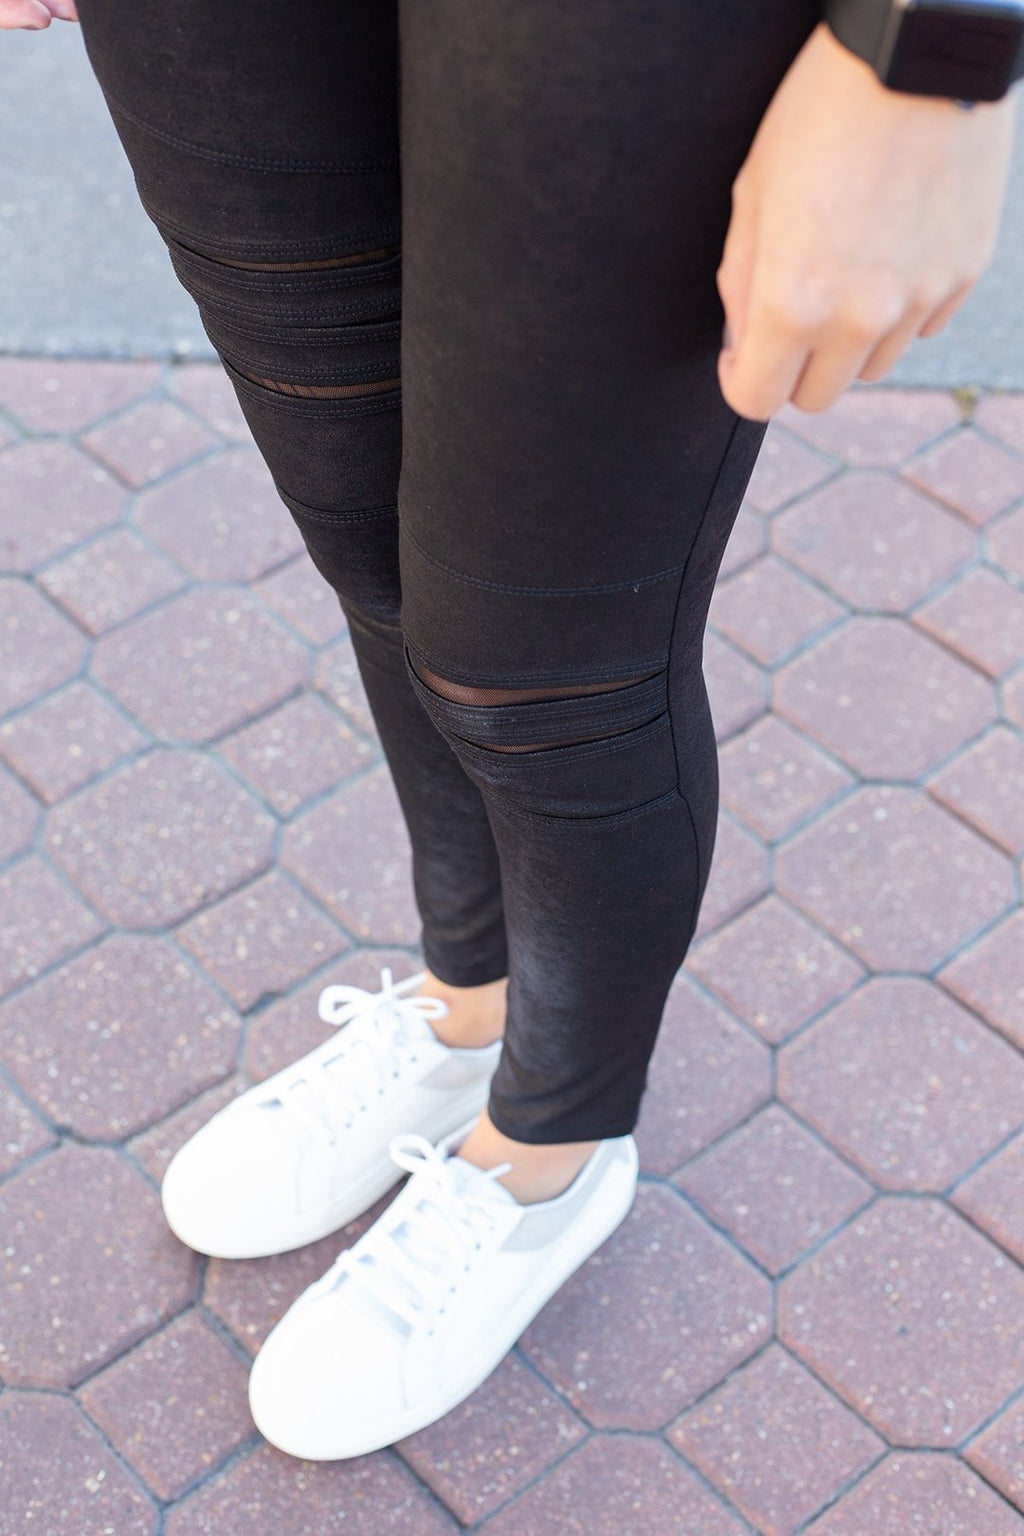 Detailed Leggings